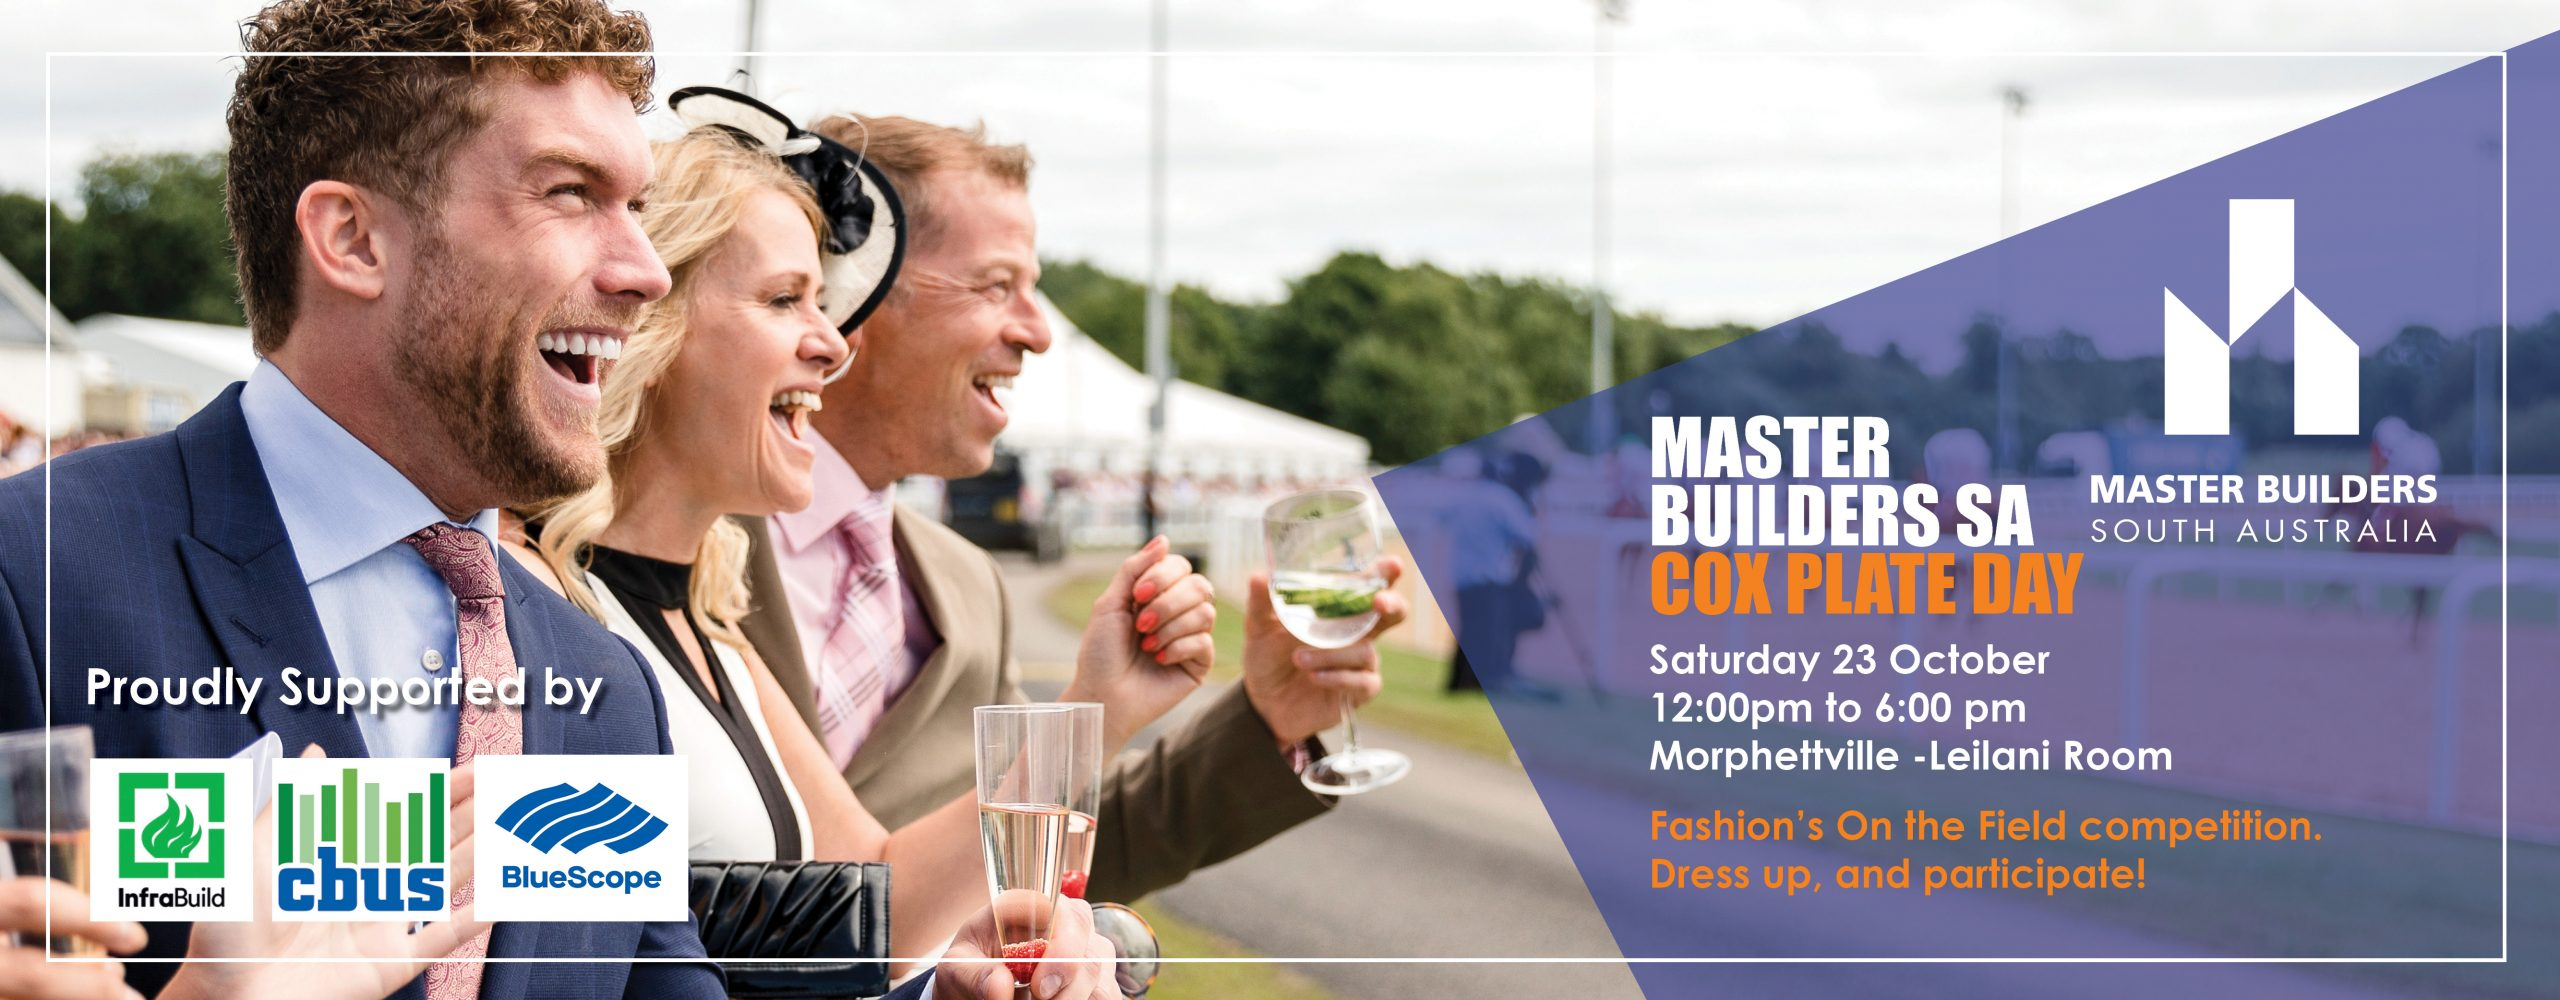 Master Builders SA Cox Plate the Day